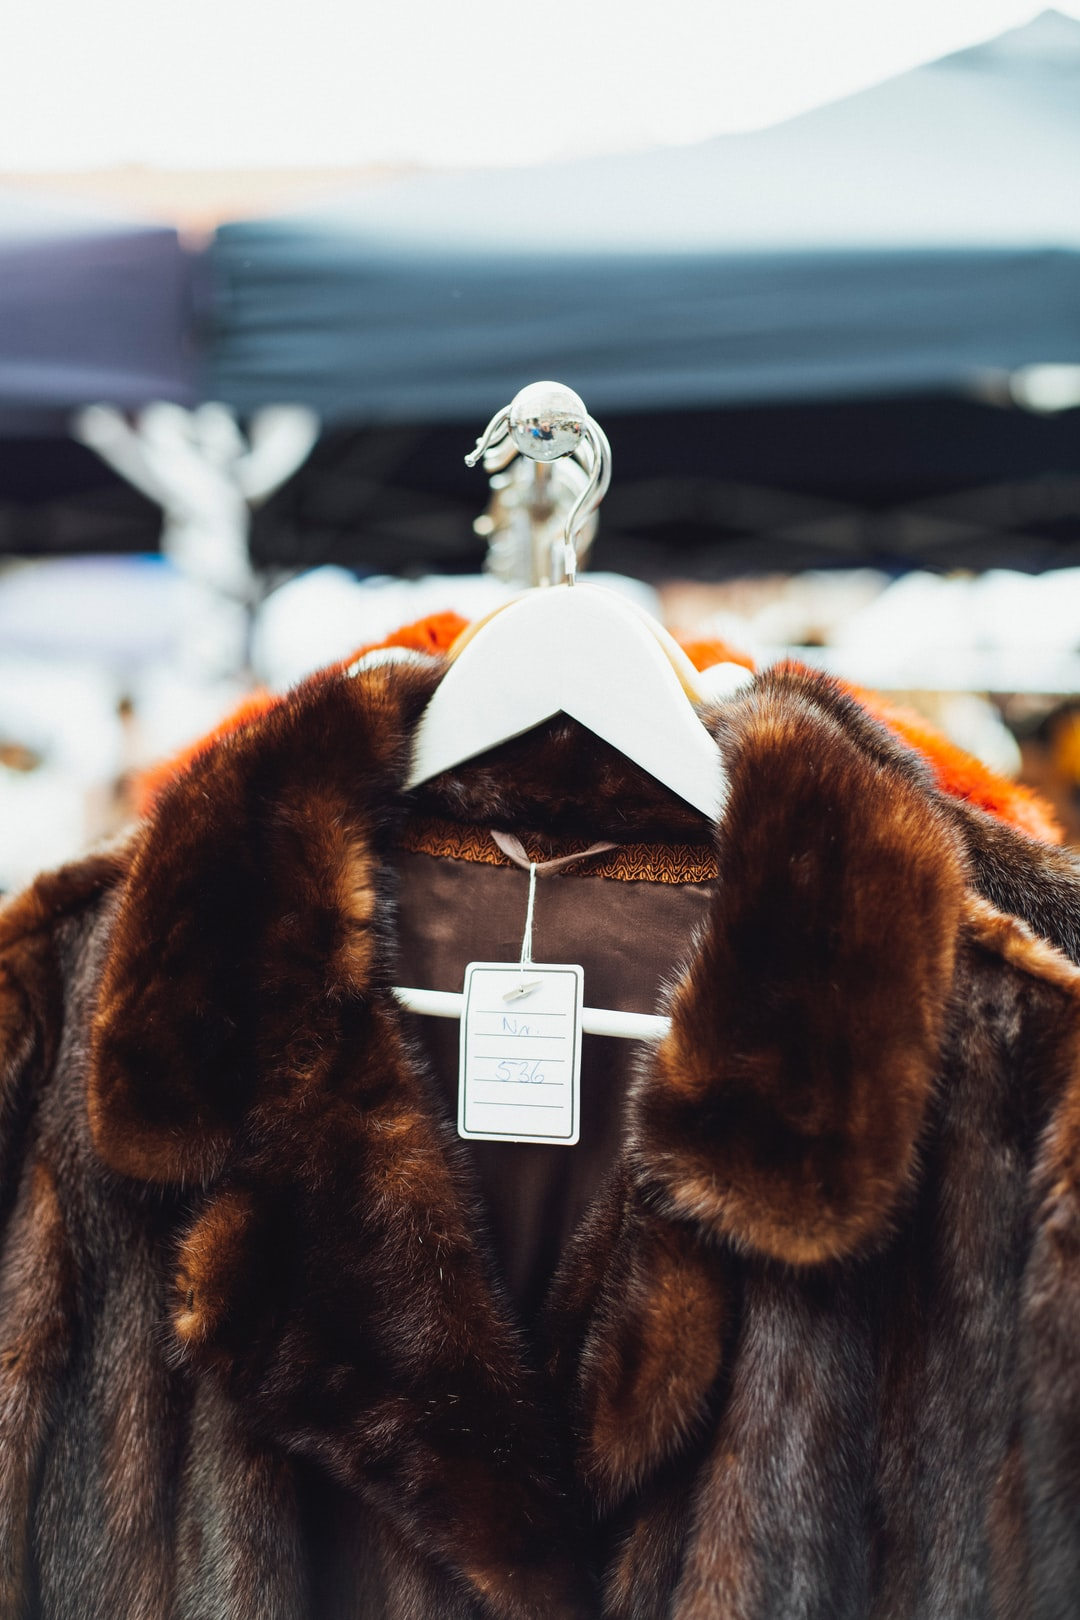 Garage Sale – Coat of Animal. Made with Canon 5d Mark III and loved analog lens, Leica Summilux-R 1.4 50mm (Year: 1983)